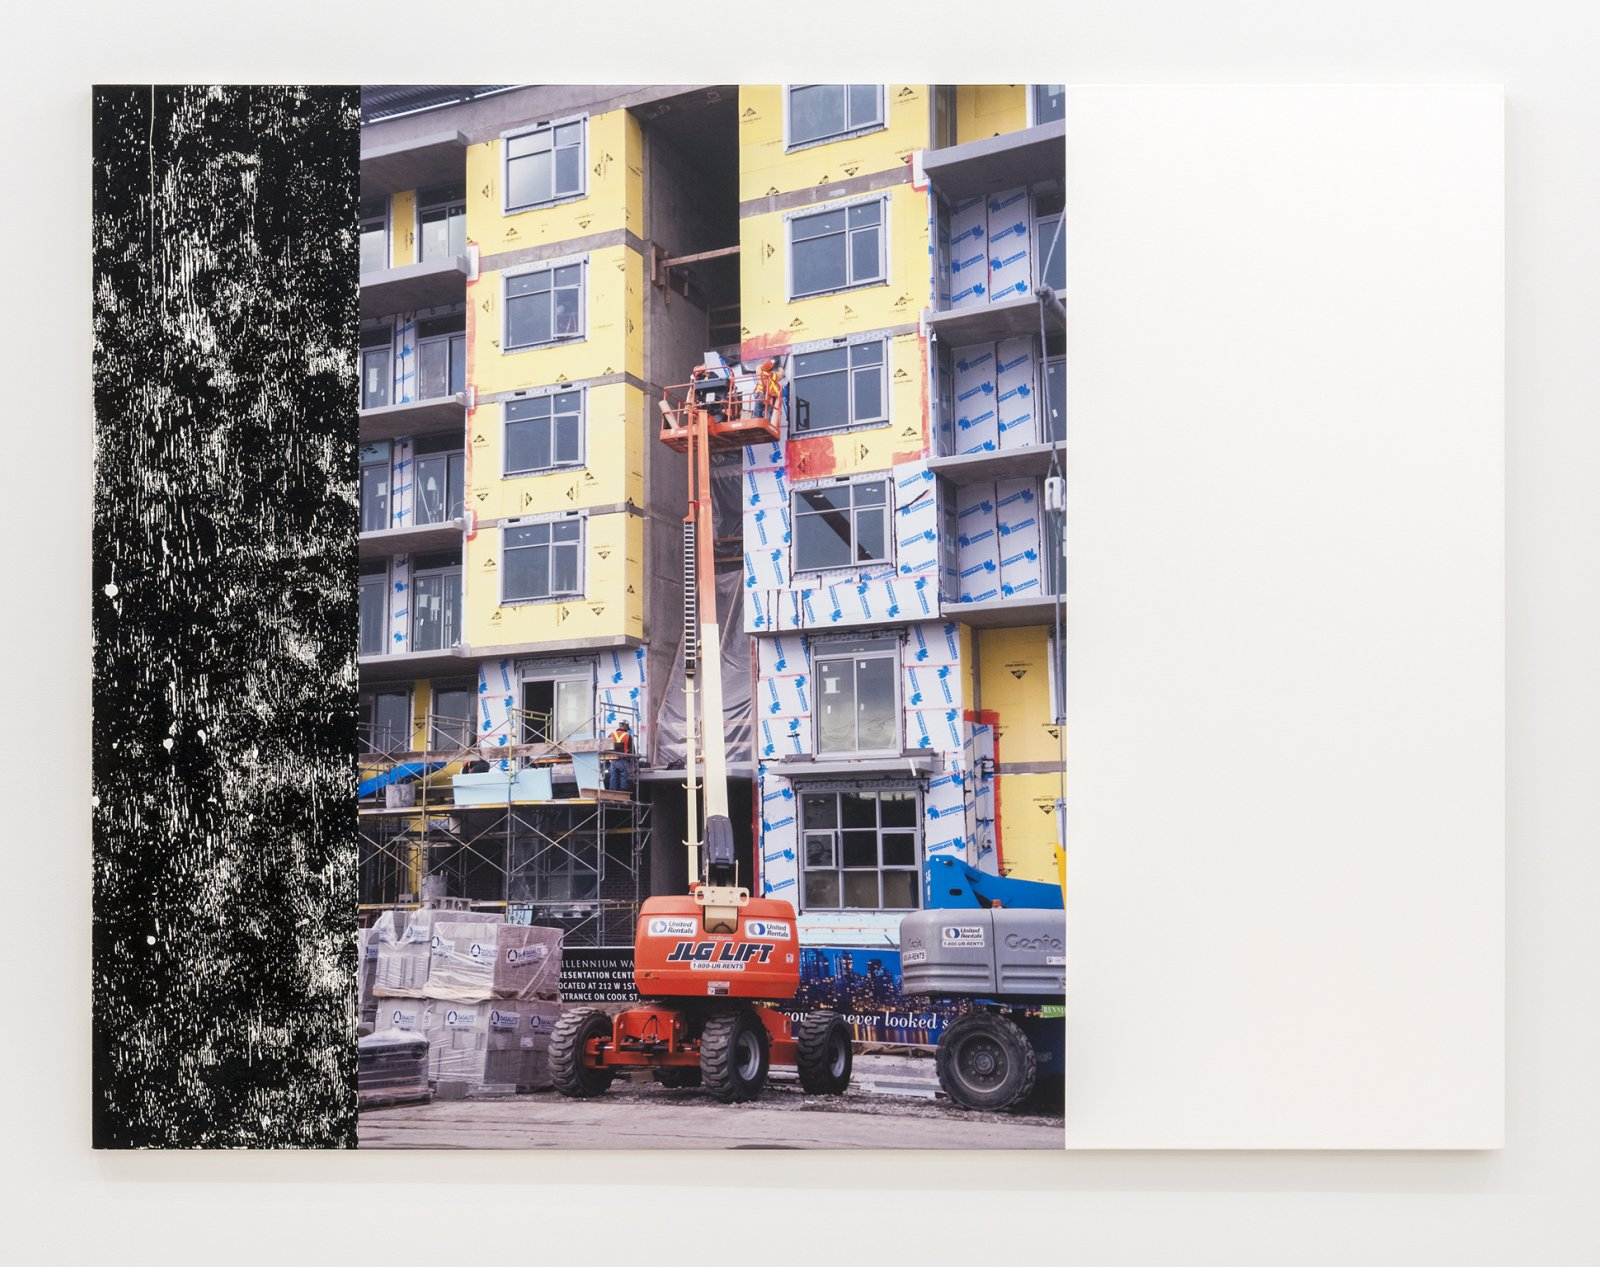 Ian Wallace, Construction Site (Olympic Village) II, 2011, photolaminate and acrylic on canvas, 72 x 96 in. (183 x 244 cm) by Ian Wallace